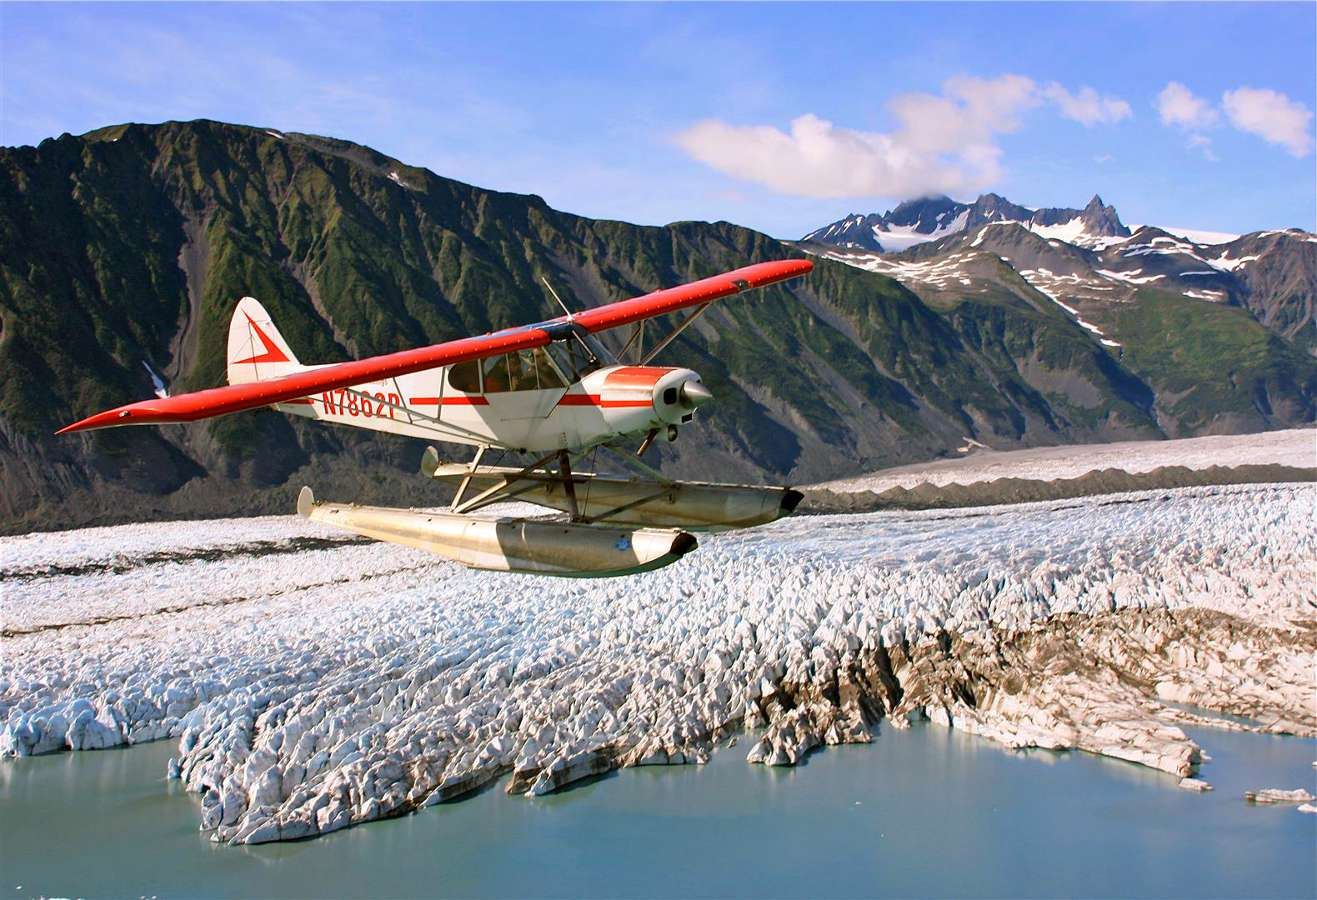 A seaplane flying over a glacial lake in Alaska.